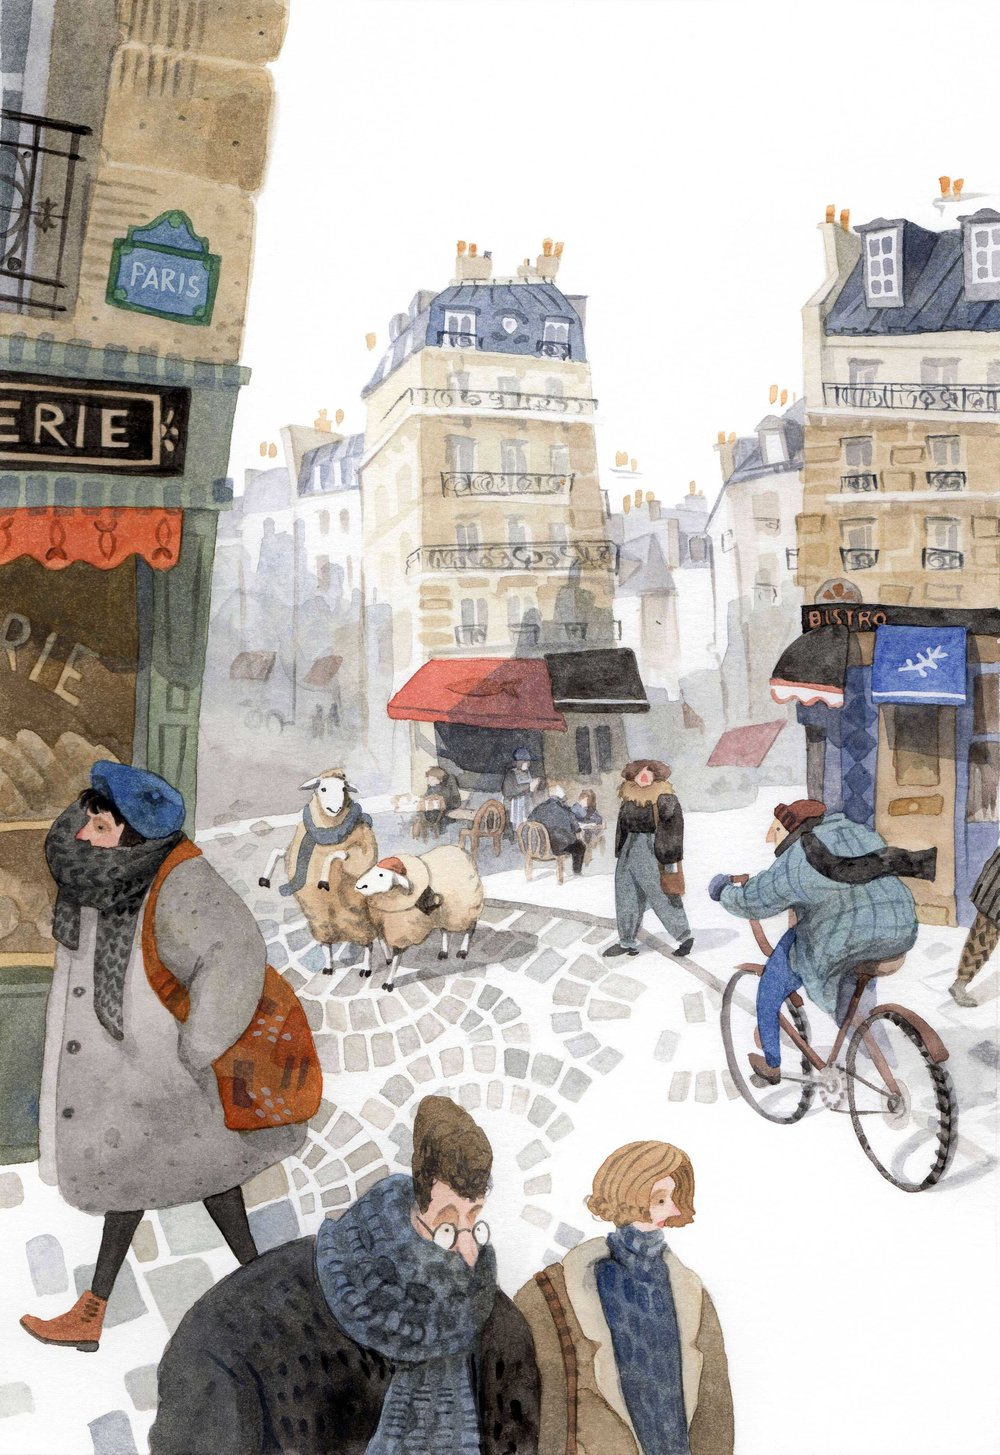 Lost sheep in Paris, Priscilla Tey, Illustration Art